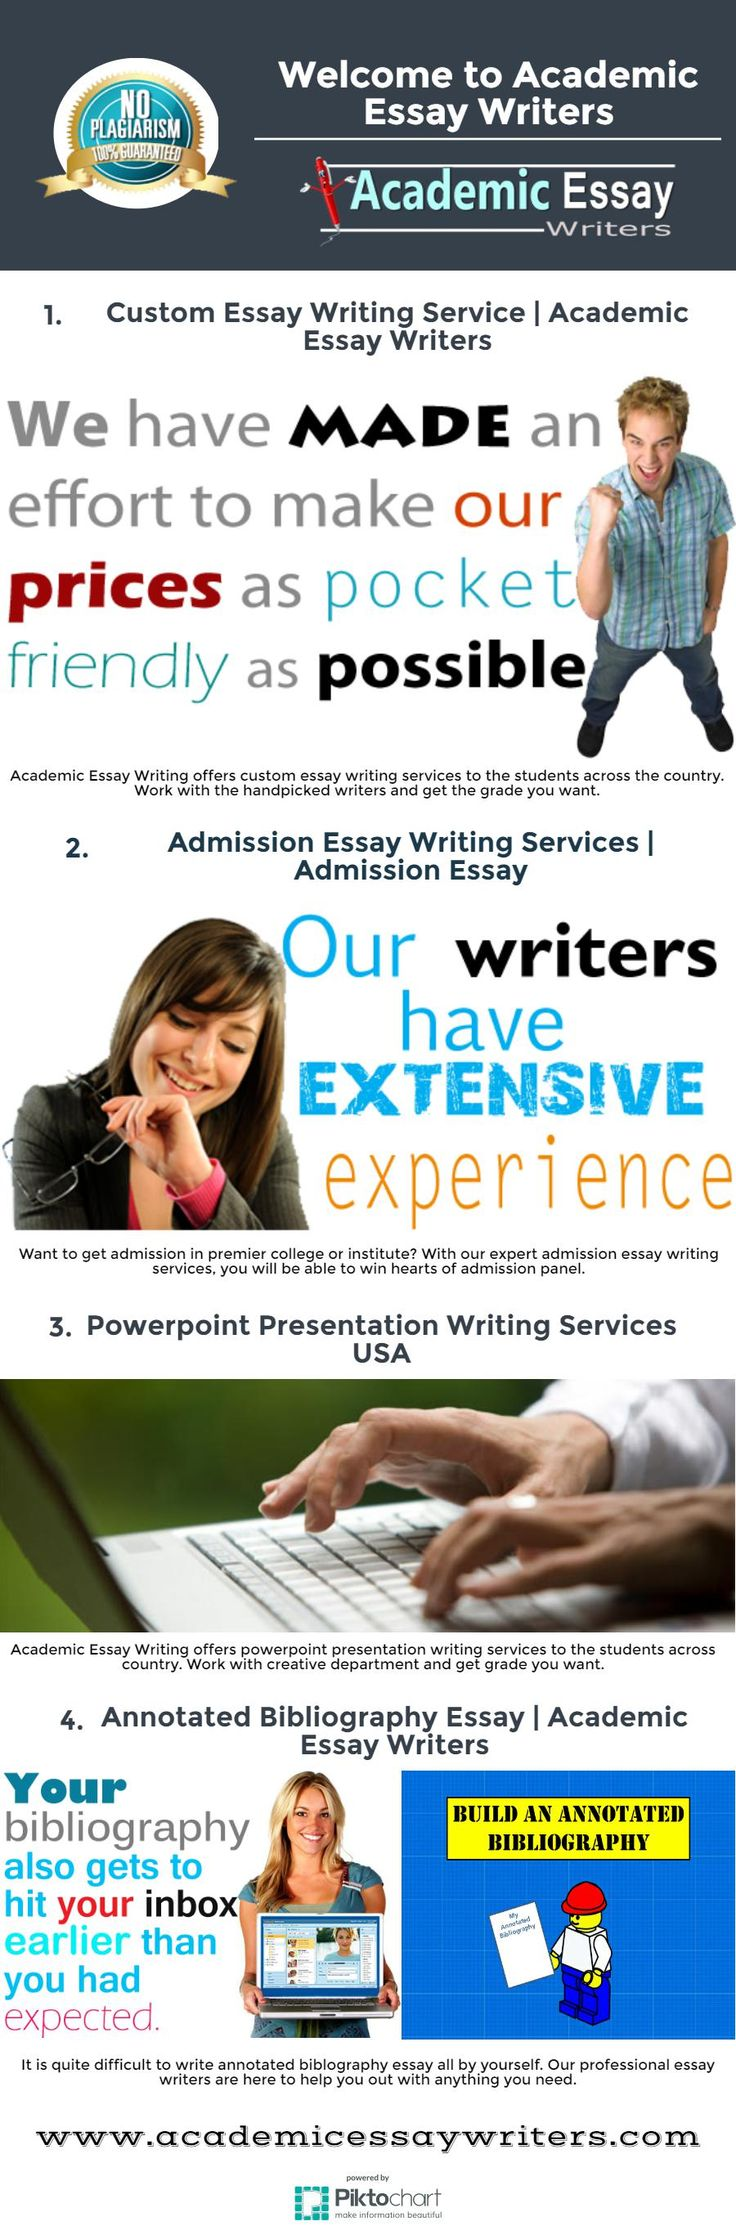 lance academic writing best ideas about academic writers  best ideas about academic writers creative professional essay writing services offers custom essays research papers thesis